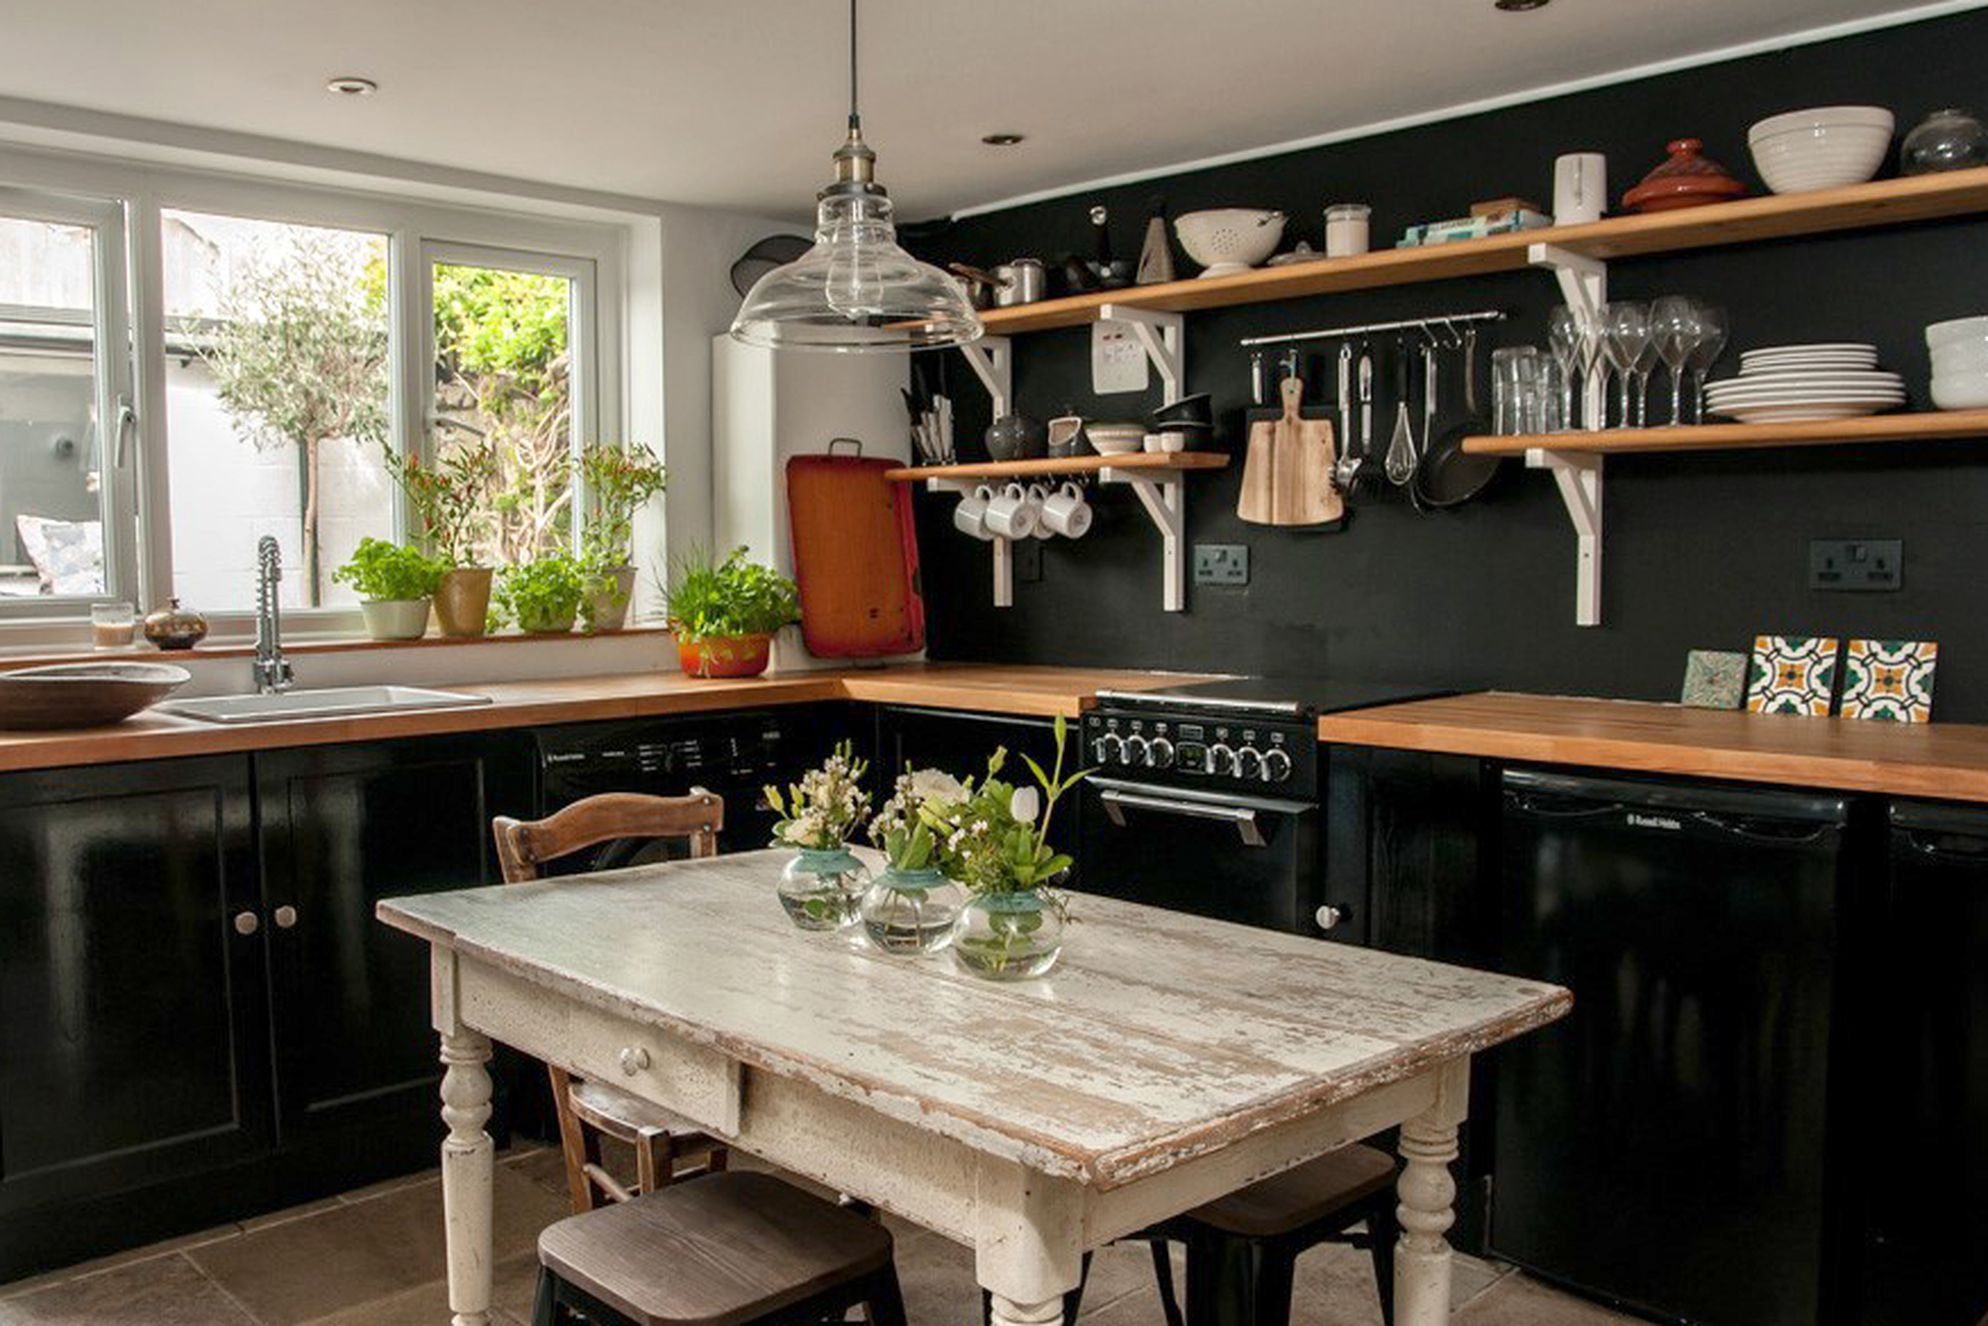 Stylish kitchen with dining table